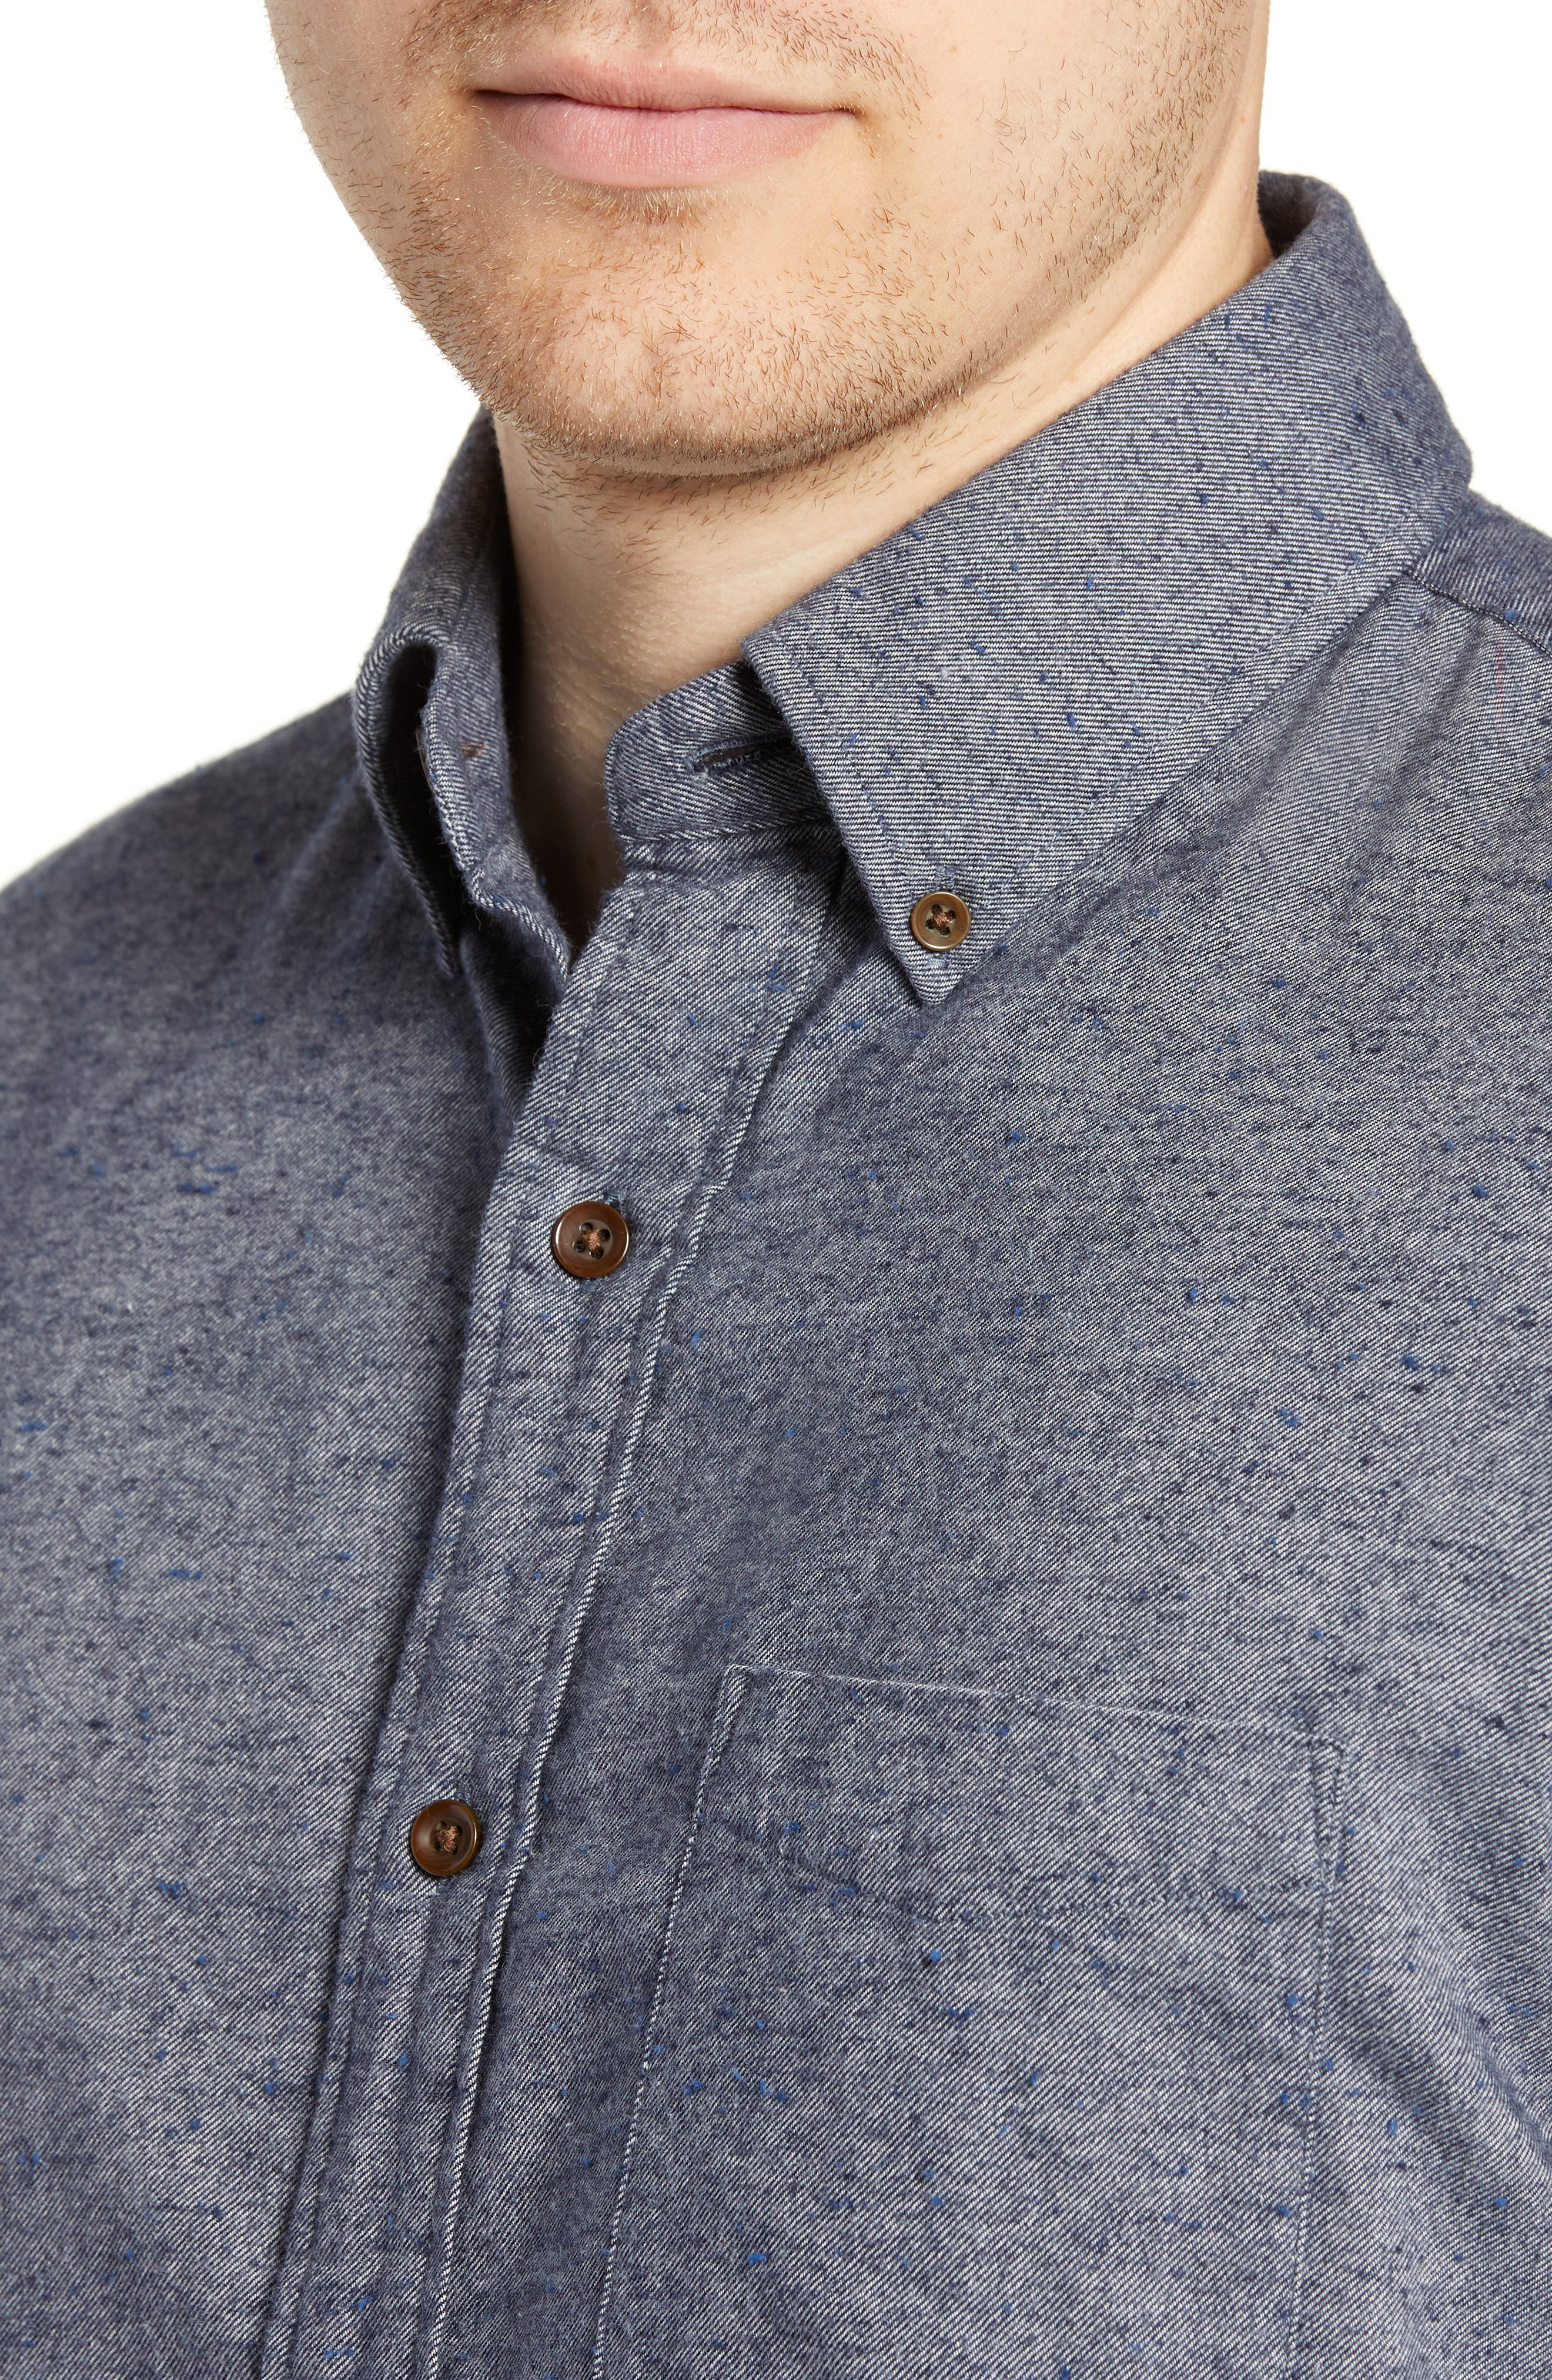 Pacific Regular Fit Sport Shirt,                             Alternate thumbnail 2, color,                             NAVY